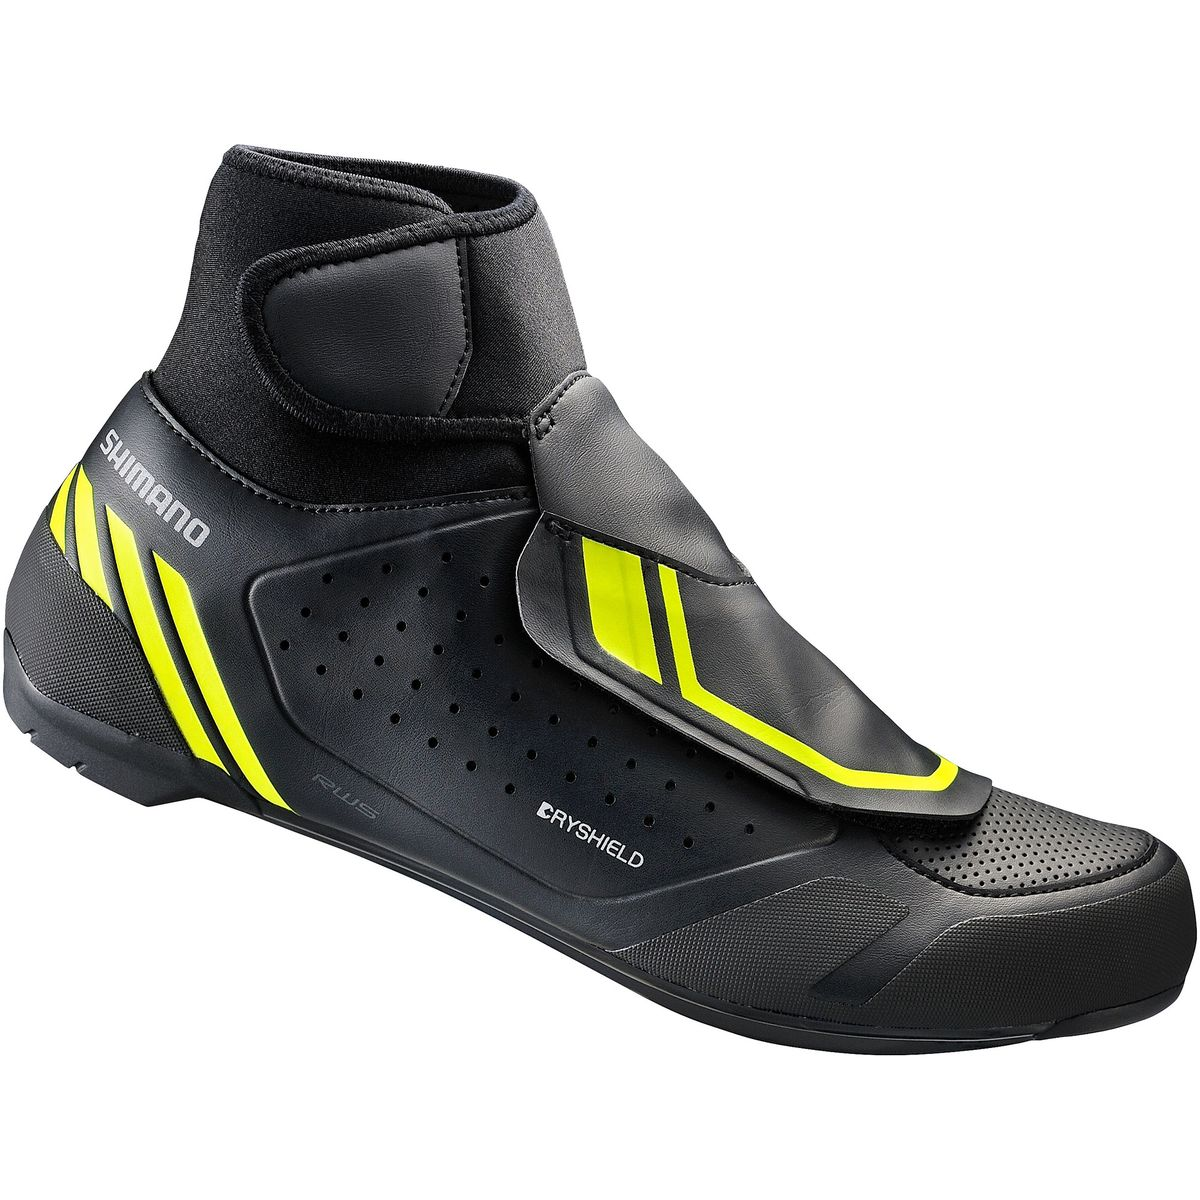 SH-RW5 winter cycling shoes